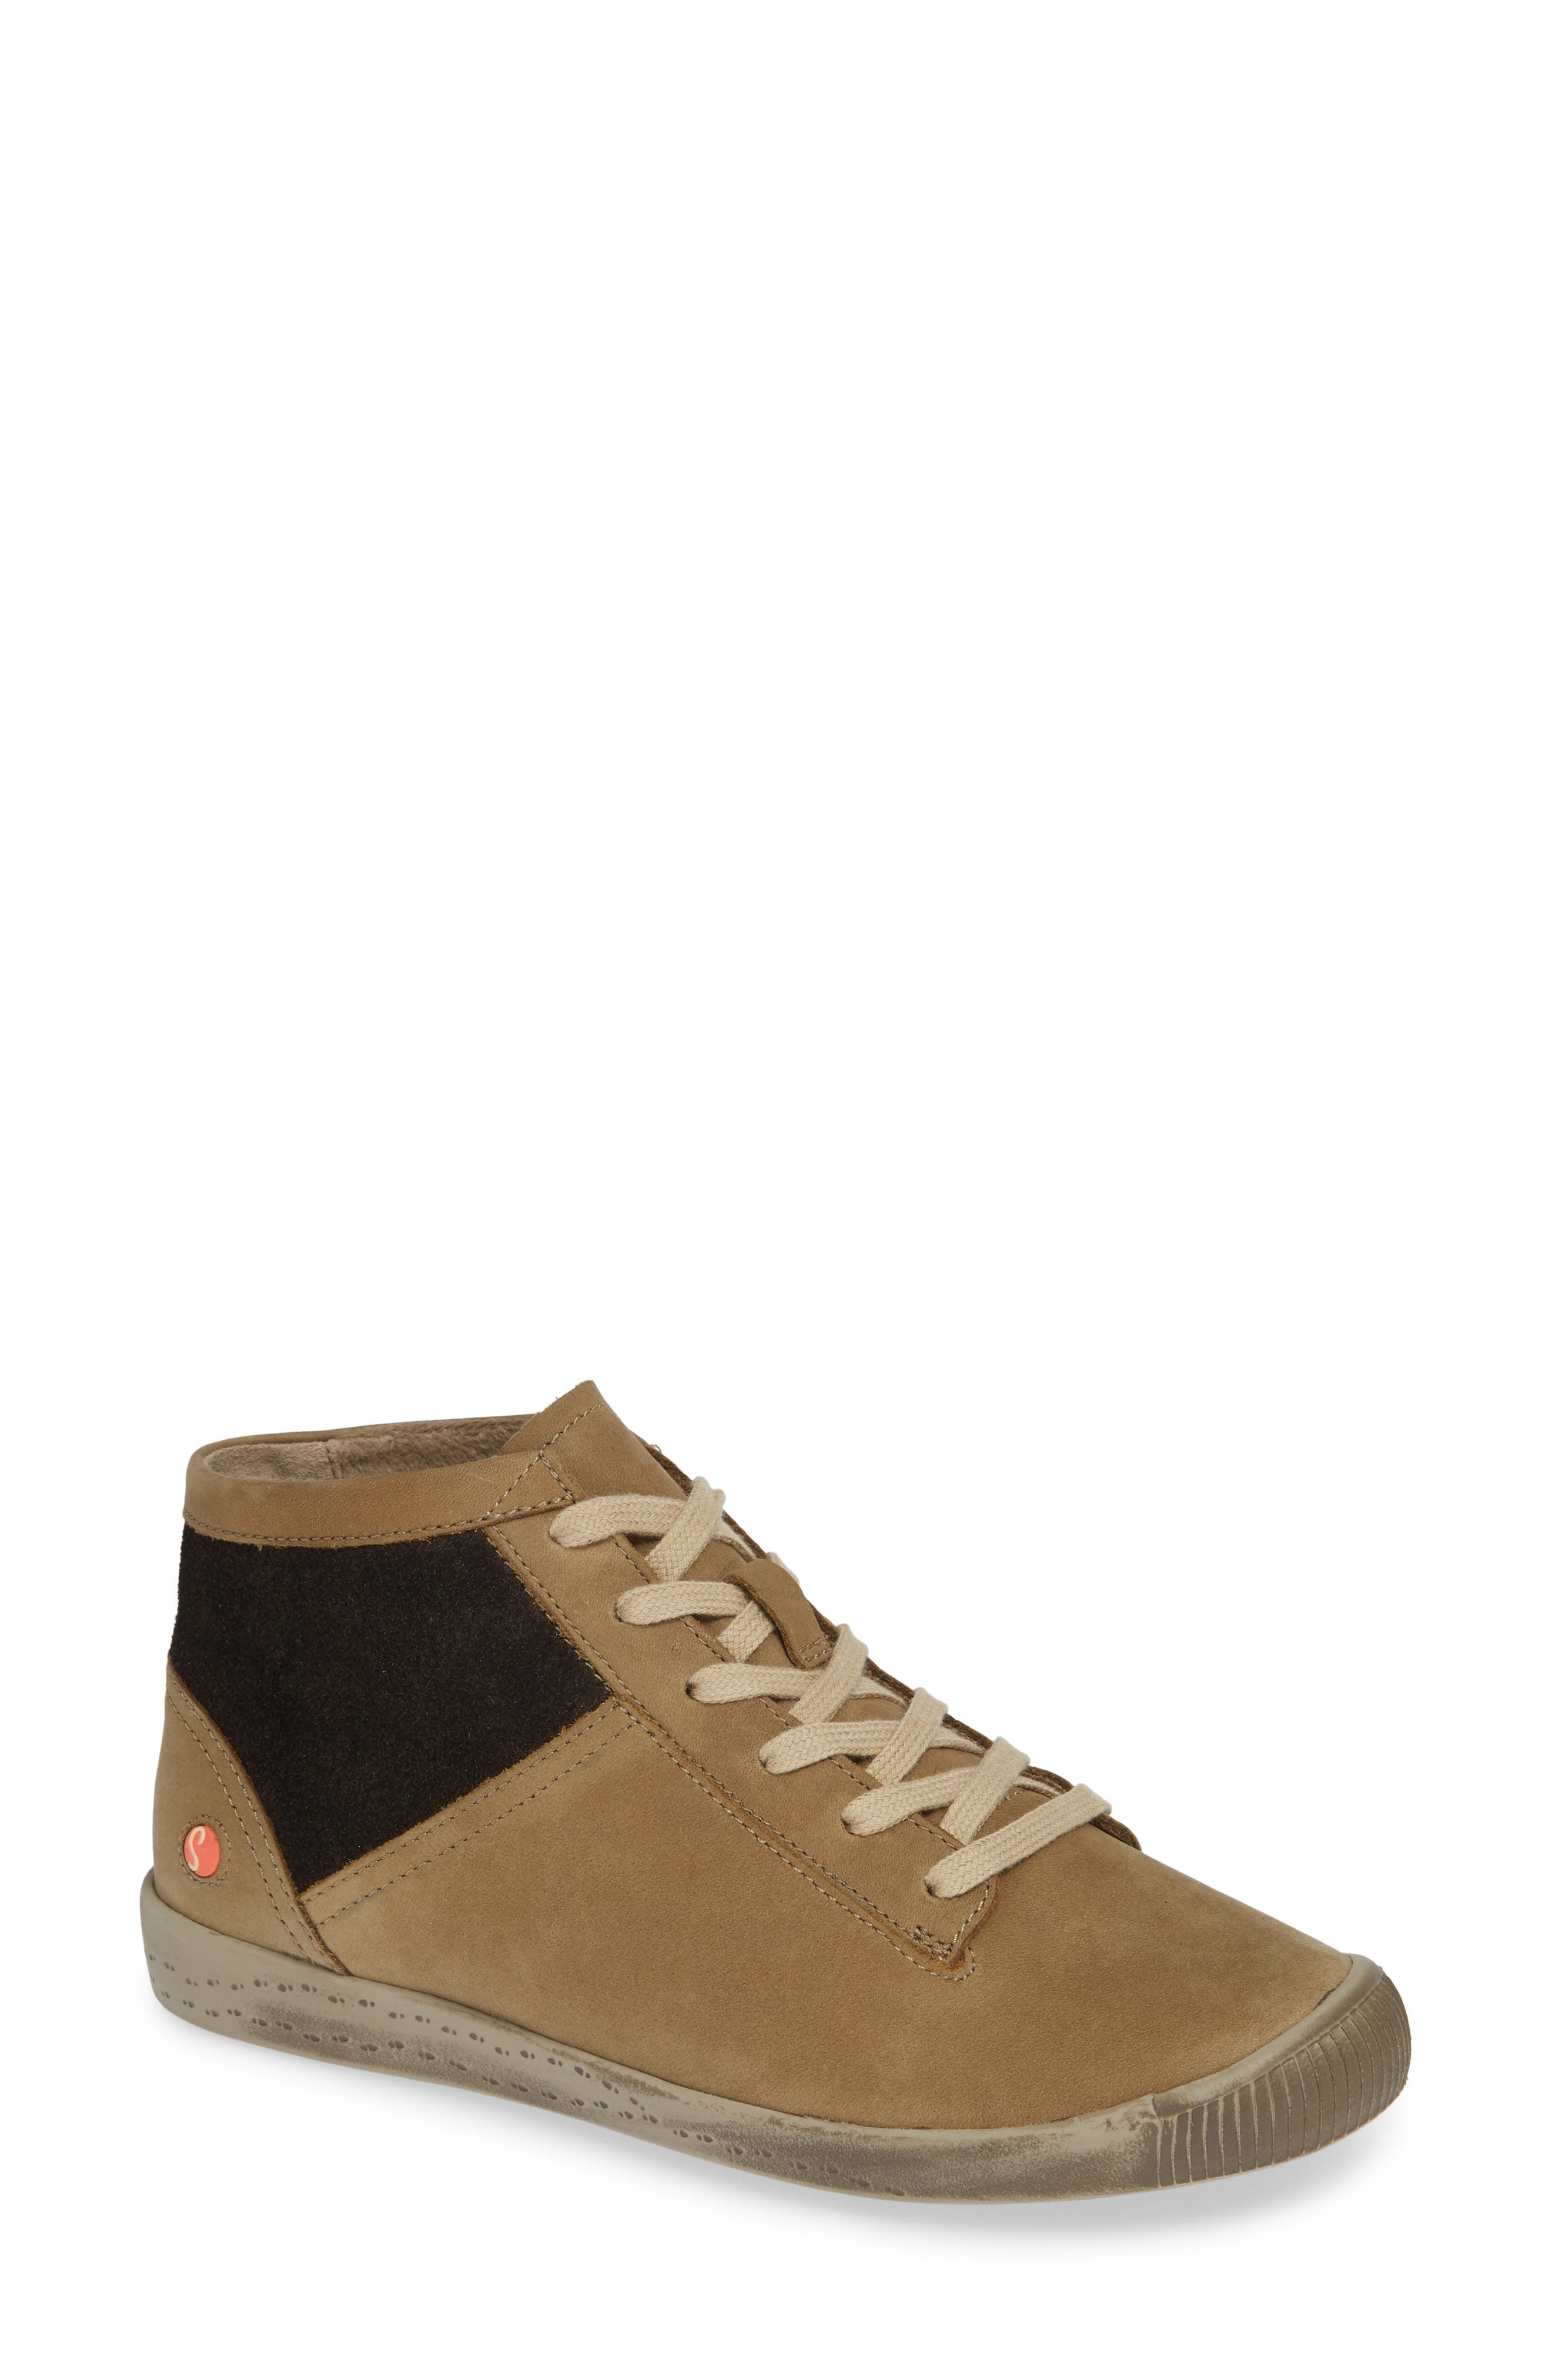 Softinos By Fly London Iap High Top Sneaker - Grey